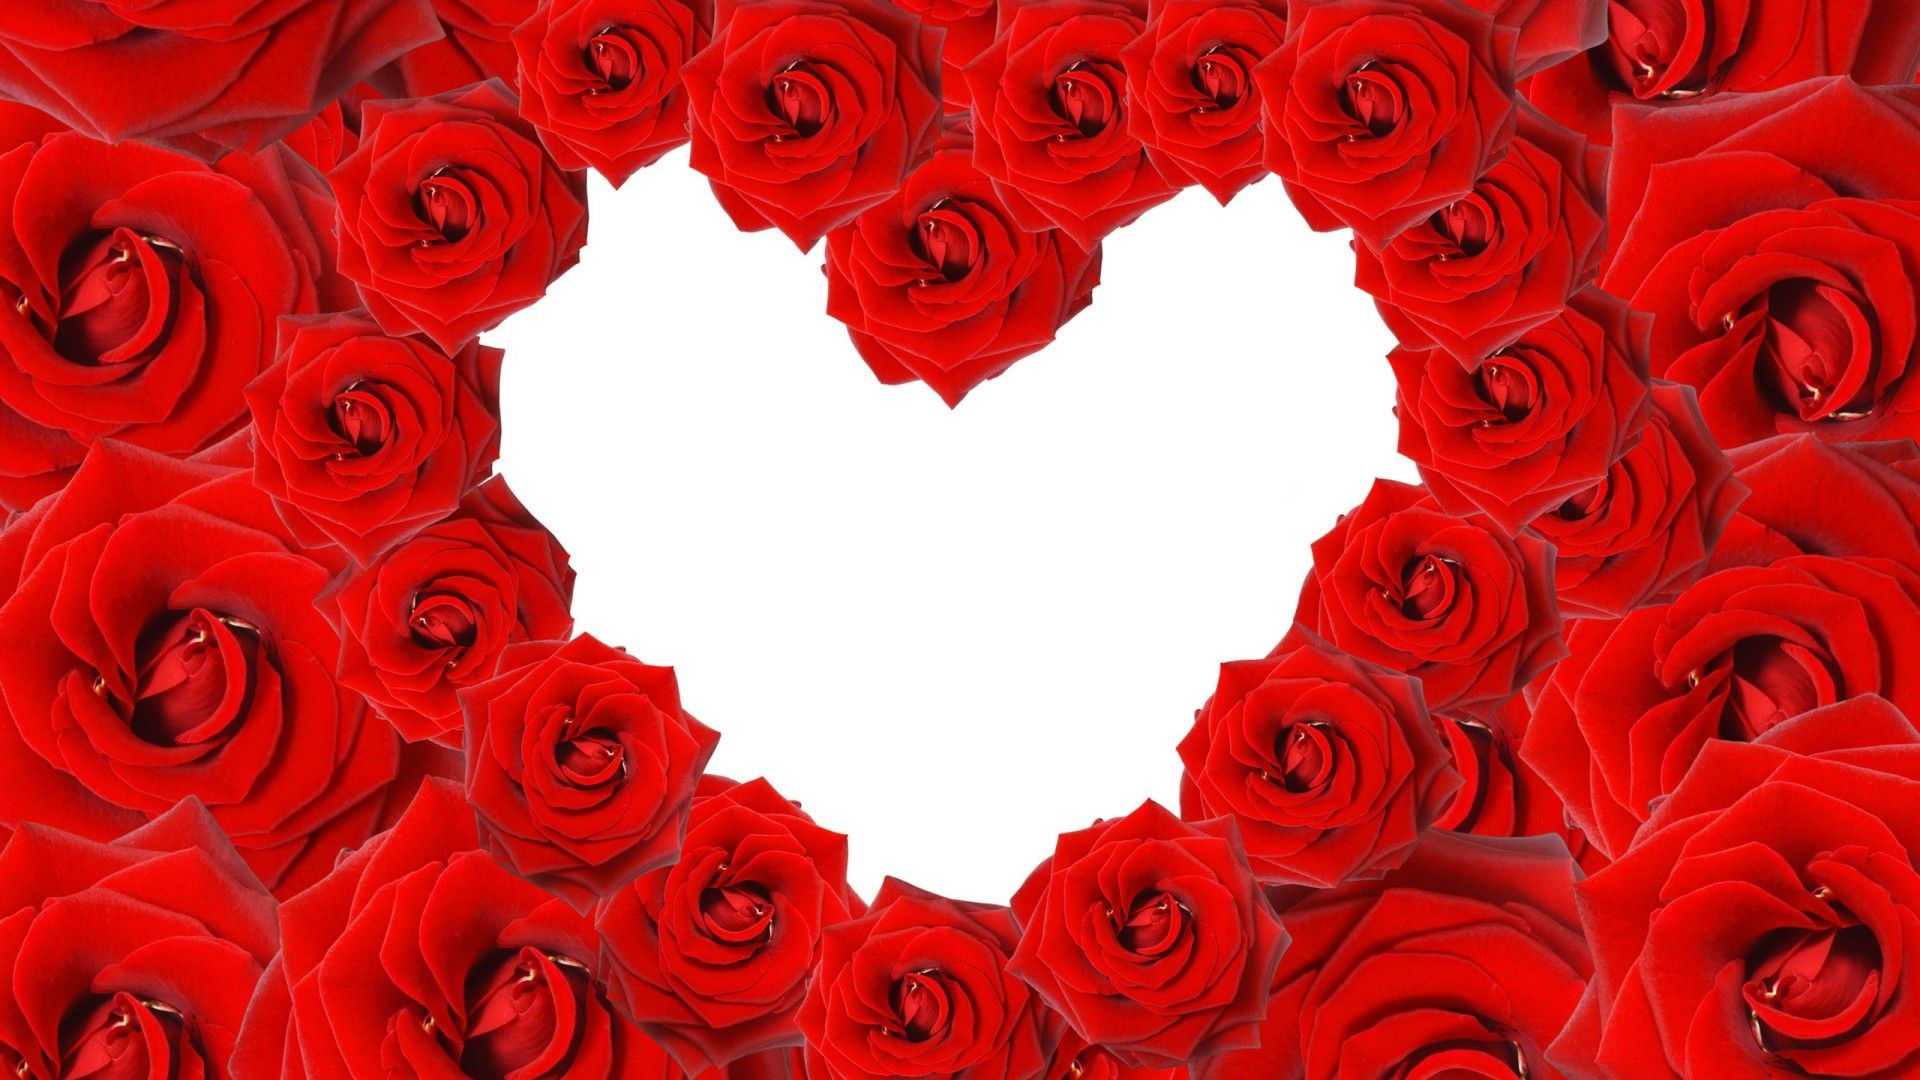 Love Red Roses In A Heart Shape On White Background Rose Wallpaper